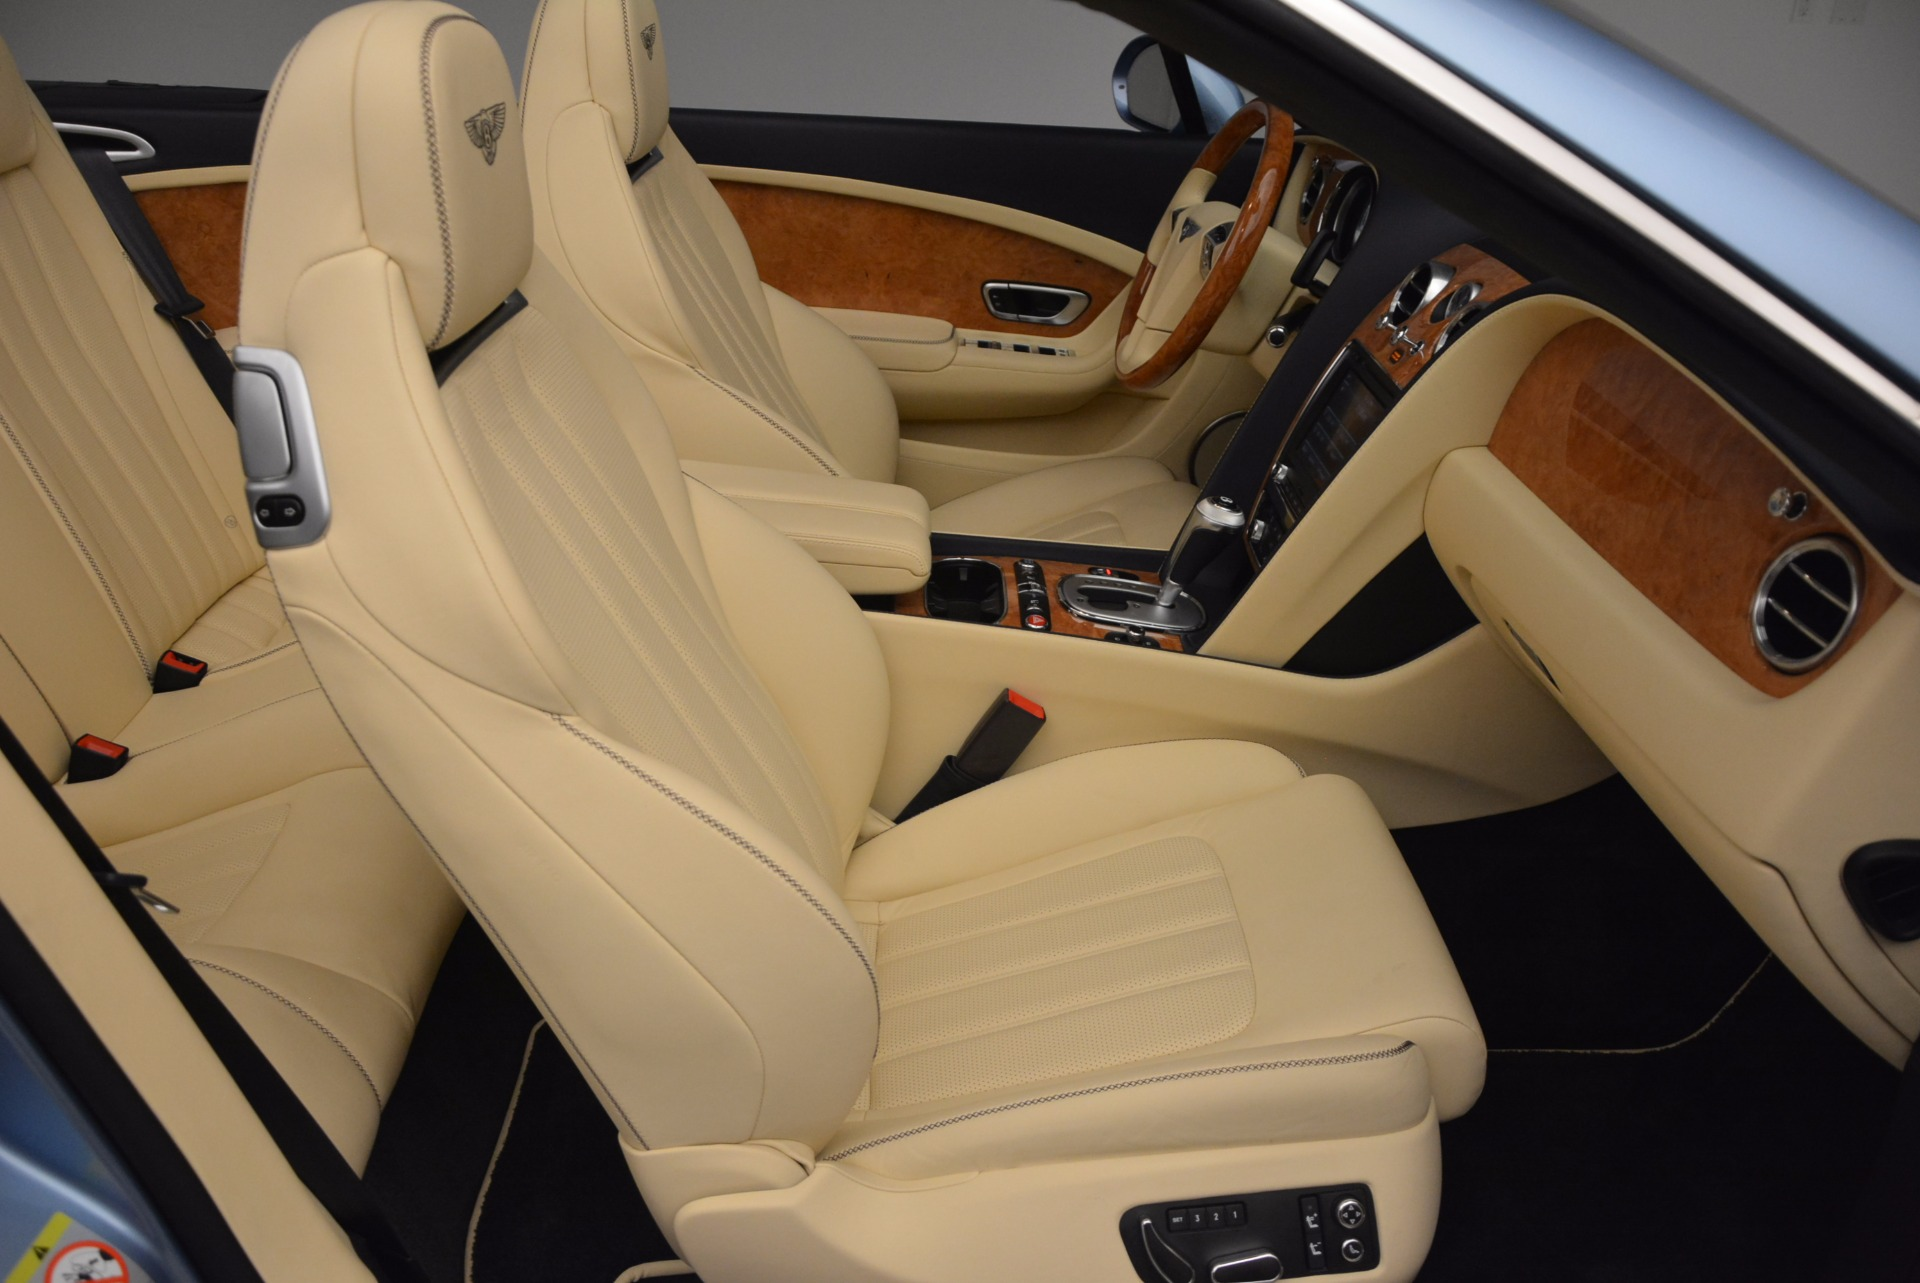 Used 2012 Bentley Continental GTC W12 For Sale In Westport, CT 1475_p44